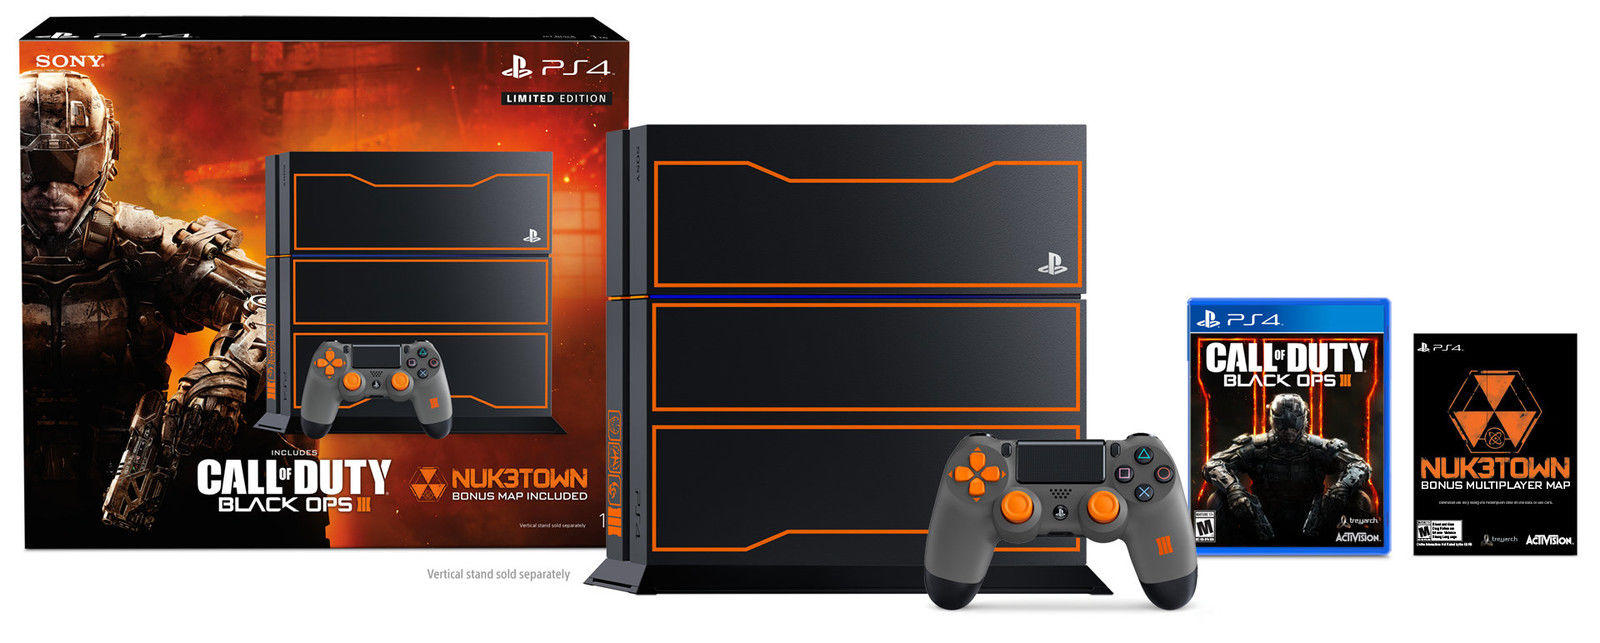 Sony PS4 1TB Call of Duty Black Ops 3 LE Bundle